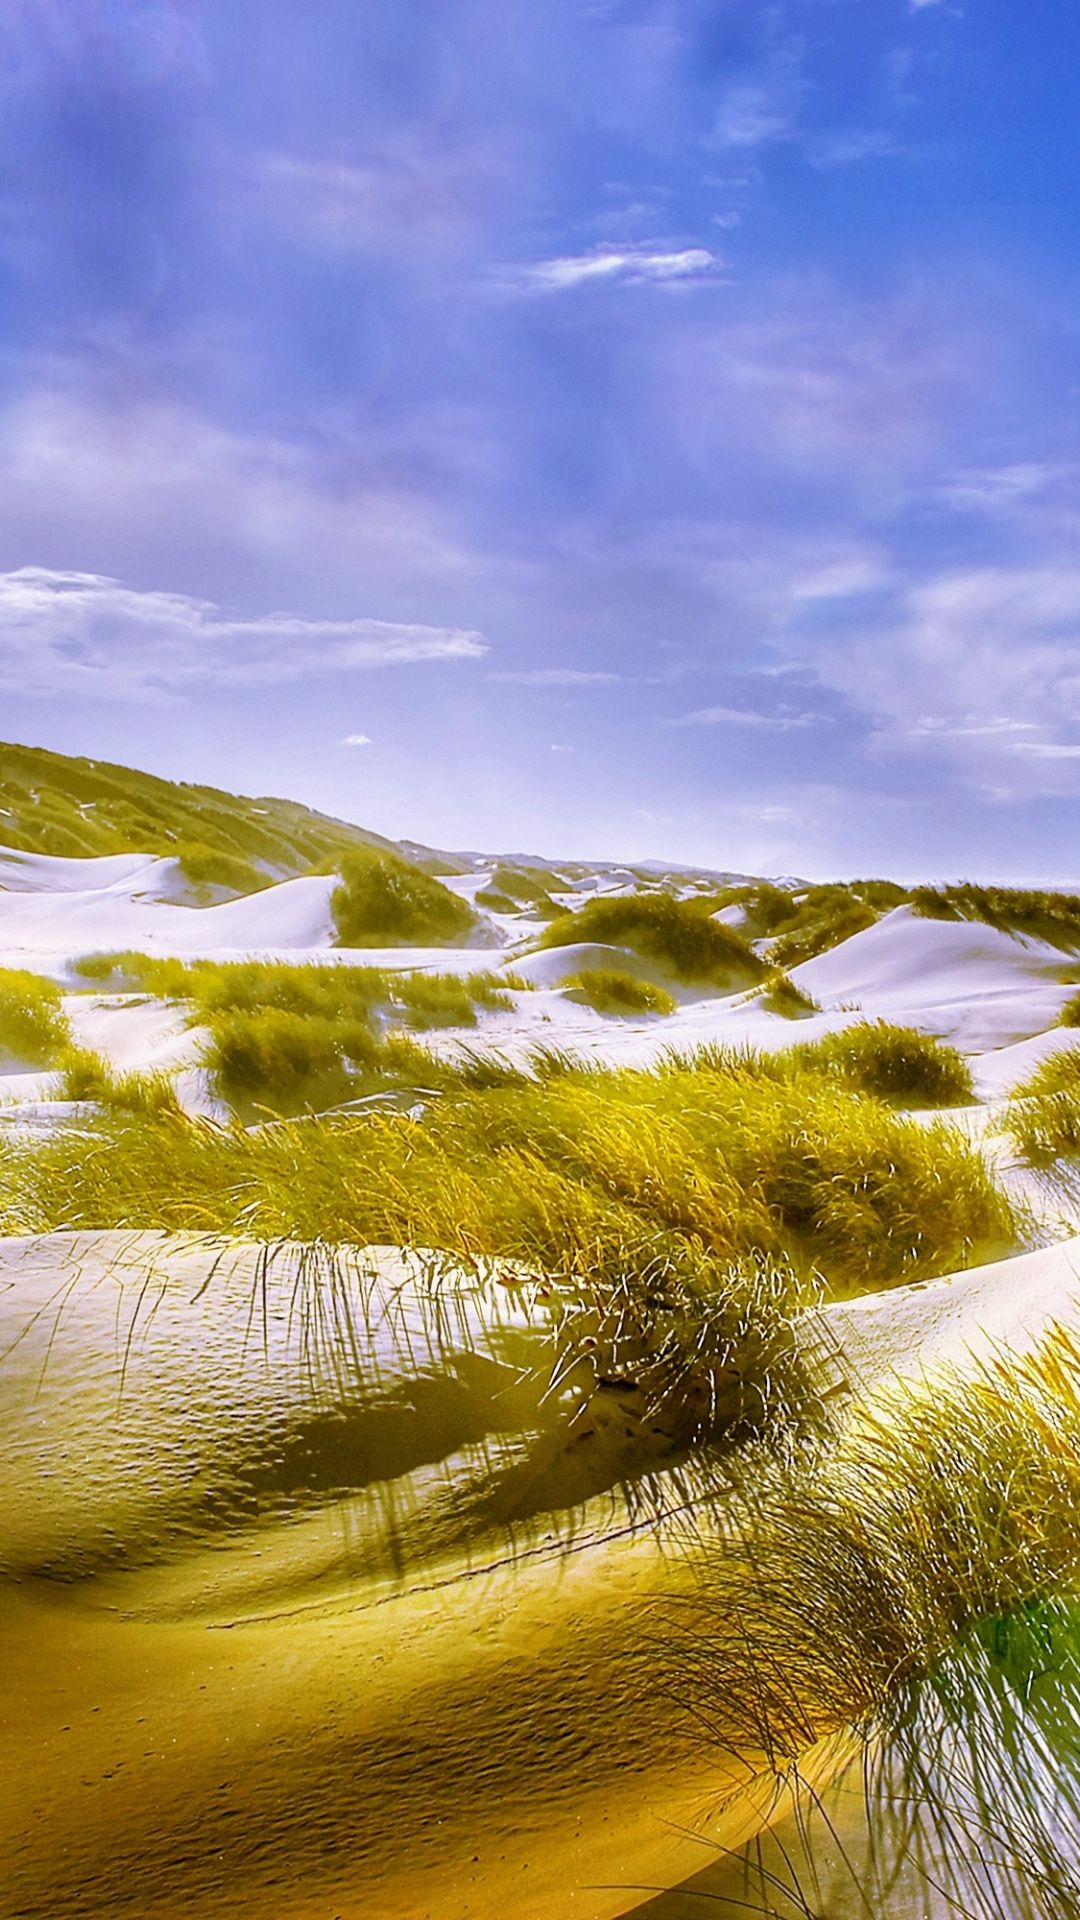 Grass Sand Beach Nature Landscape 1080x1920 Wallpaper